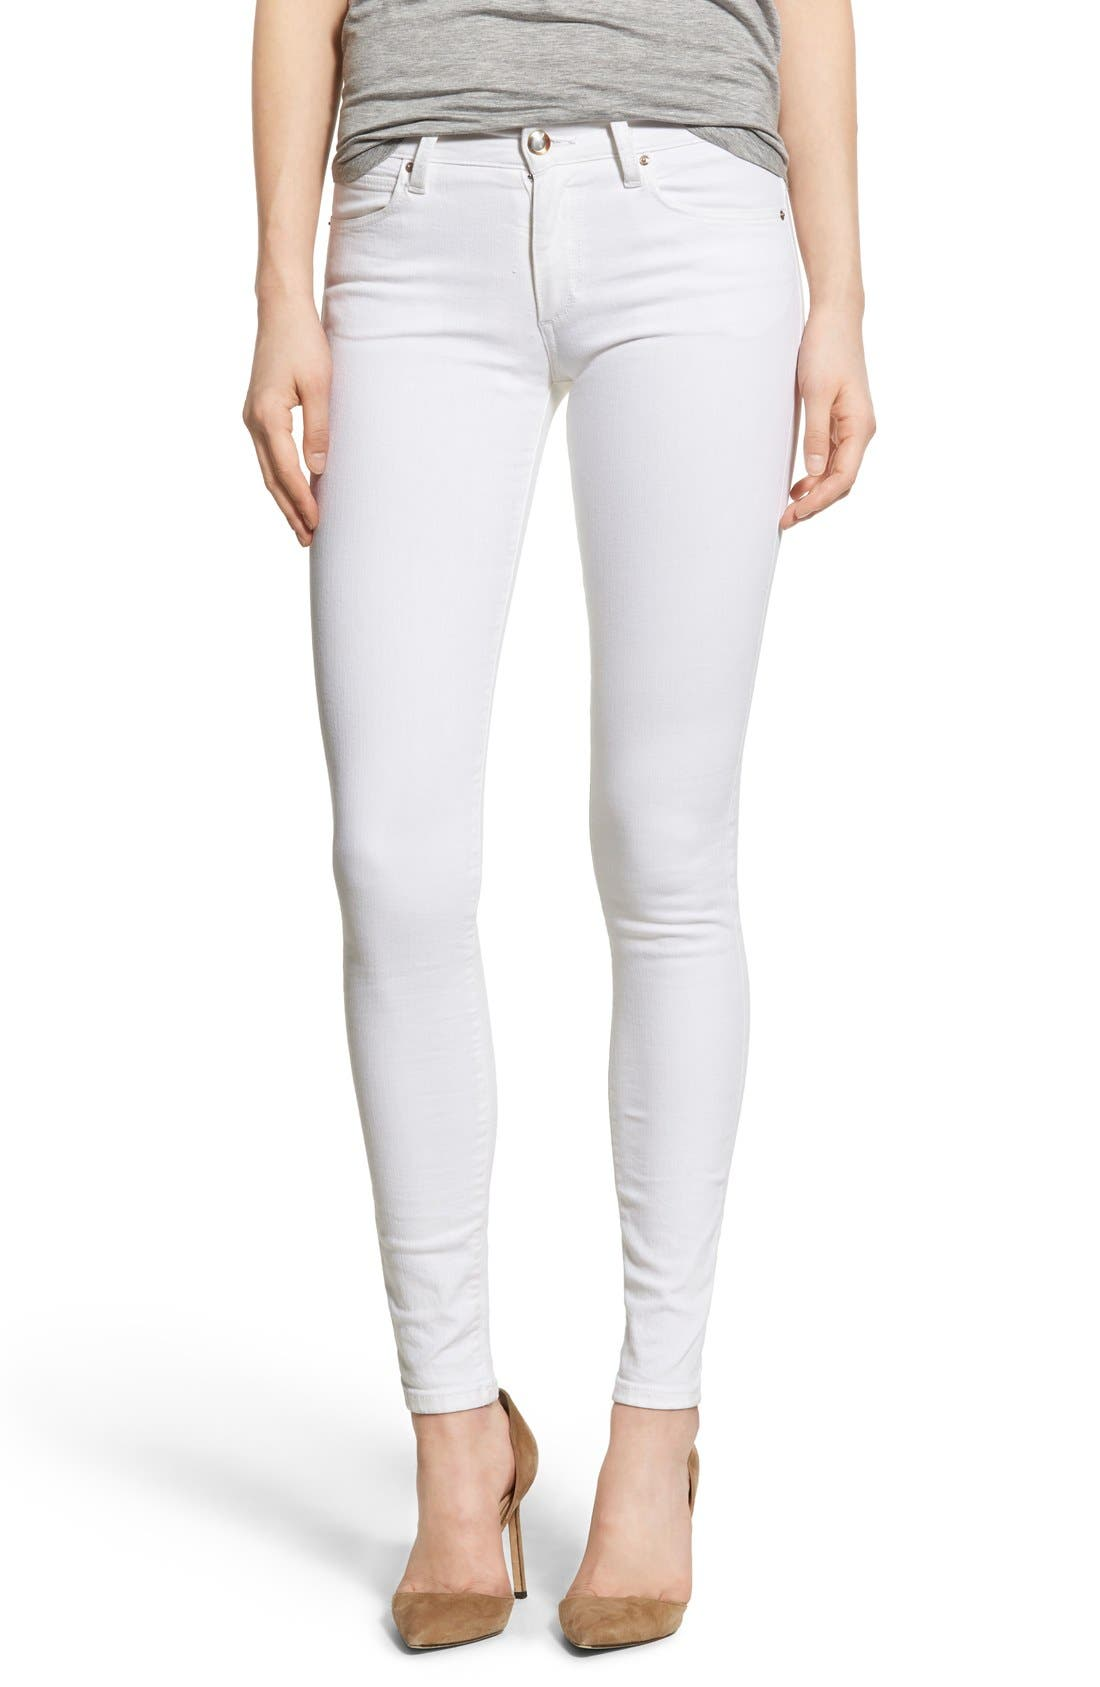 Alternate Image 1 Selected - Joe's 'Spotless - Icon' Ankle Skinny Jeans (Marlie)